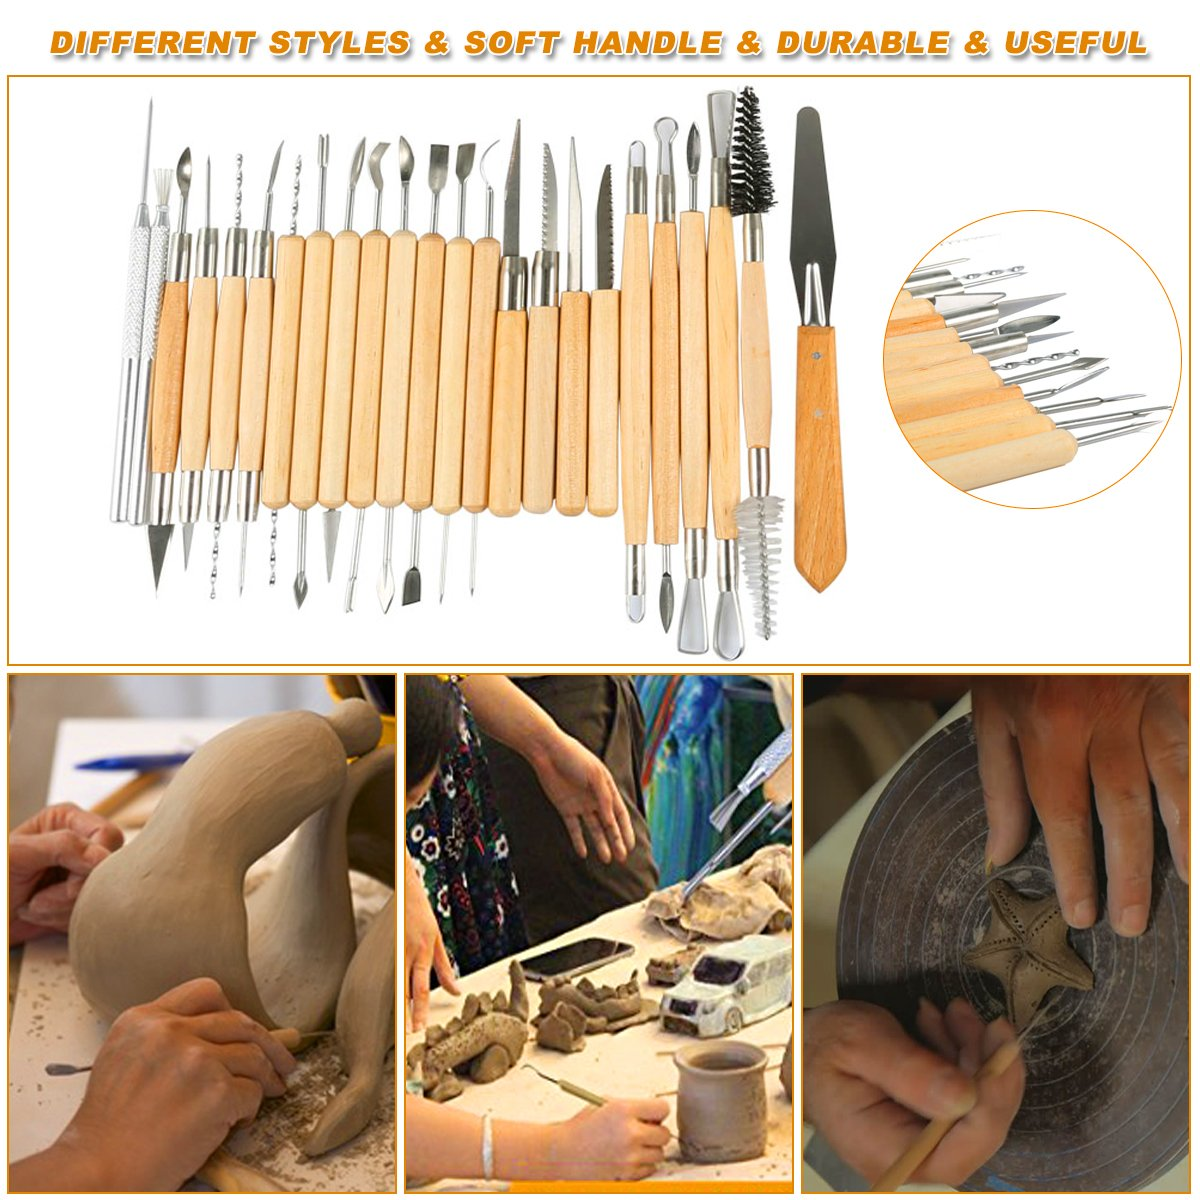 Hotab 45pcs Set Wooden Pottery & Clay Sculpting Tools with Plastic Case by Hotab (Image #5)